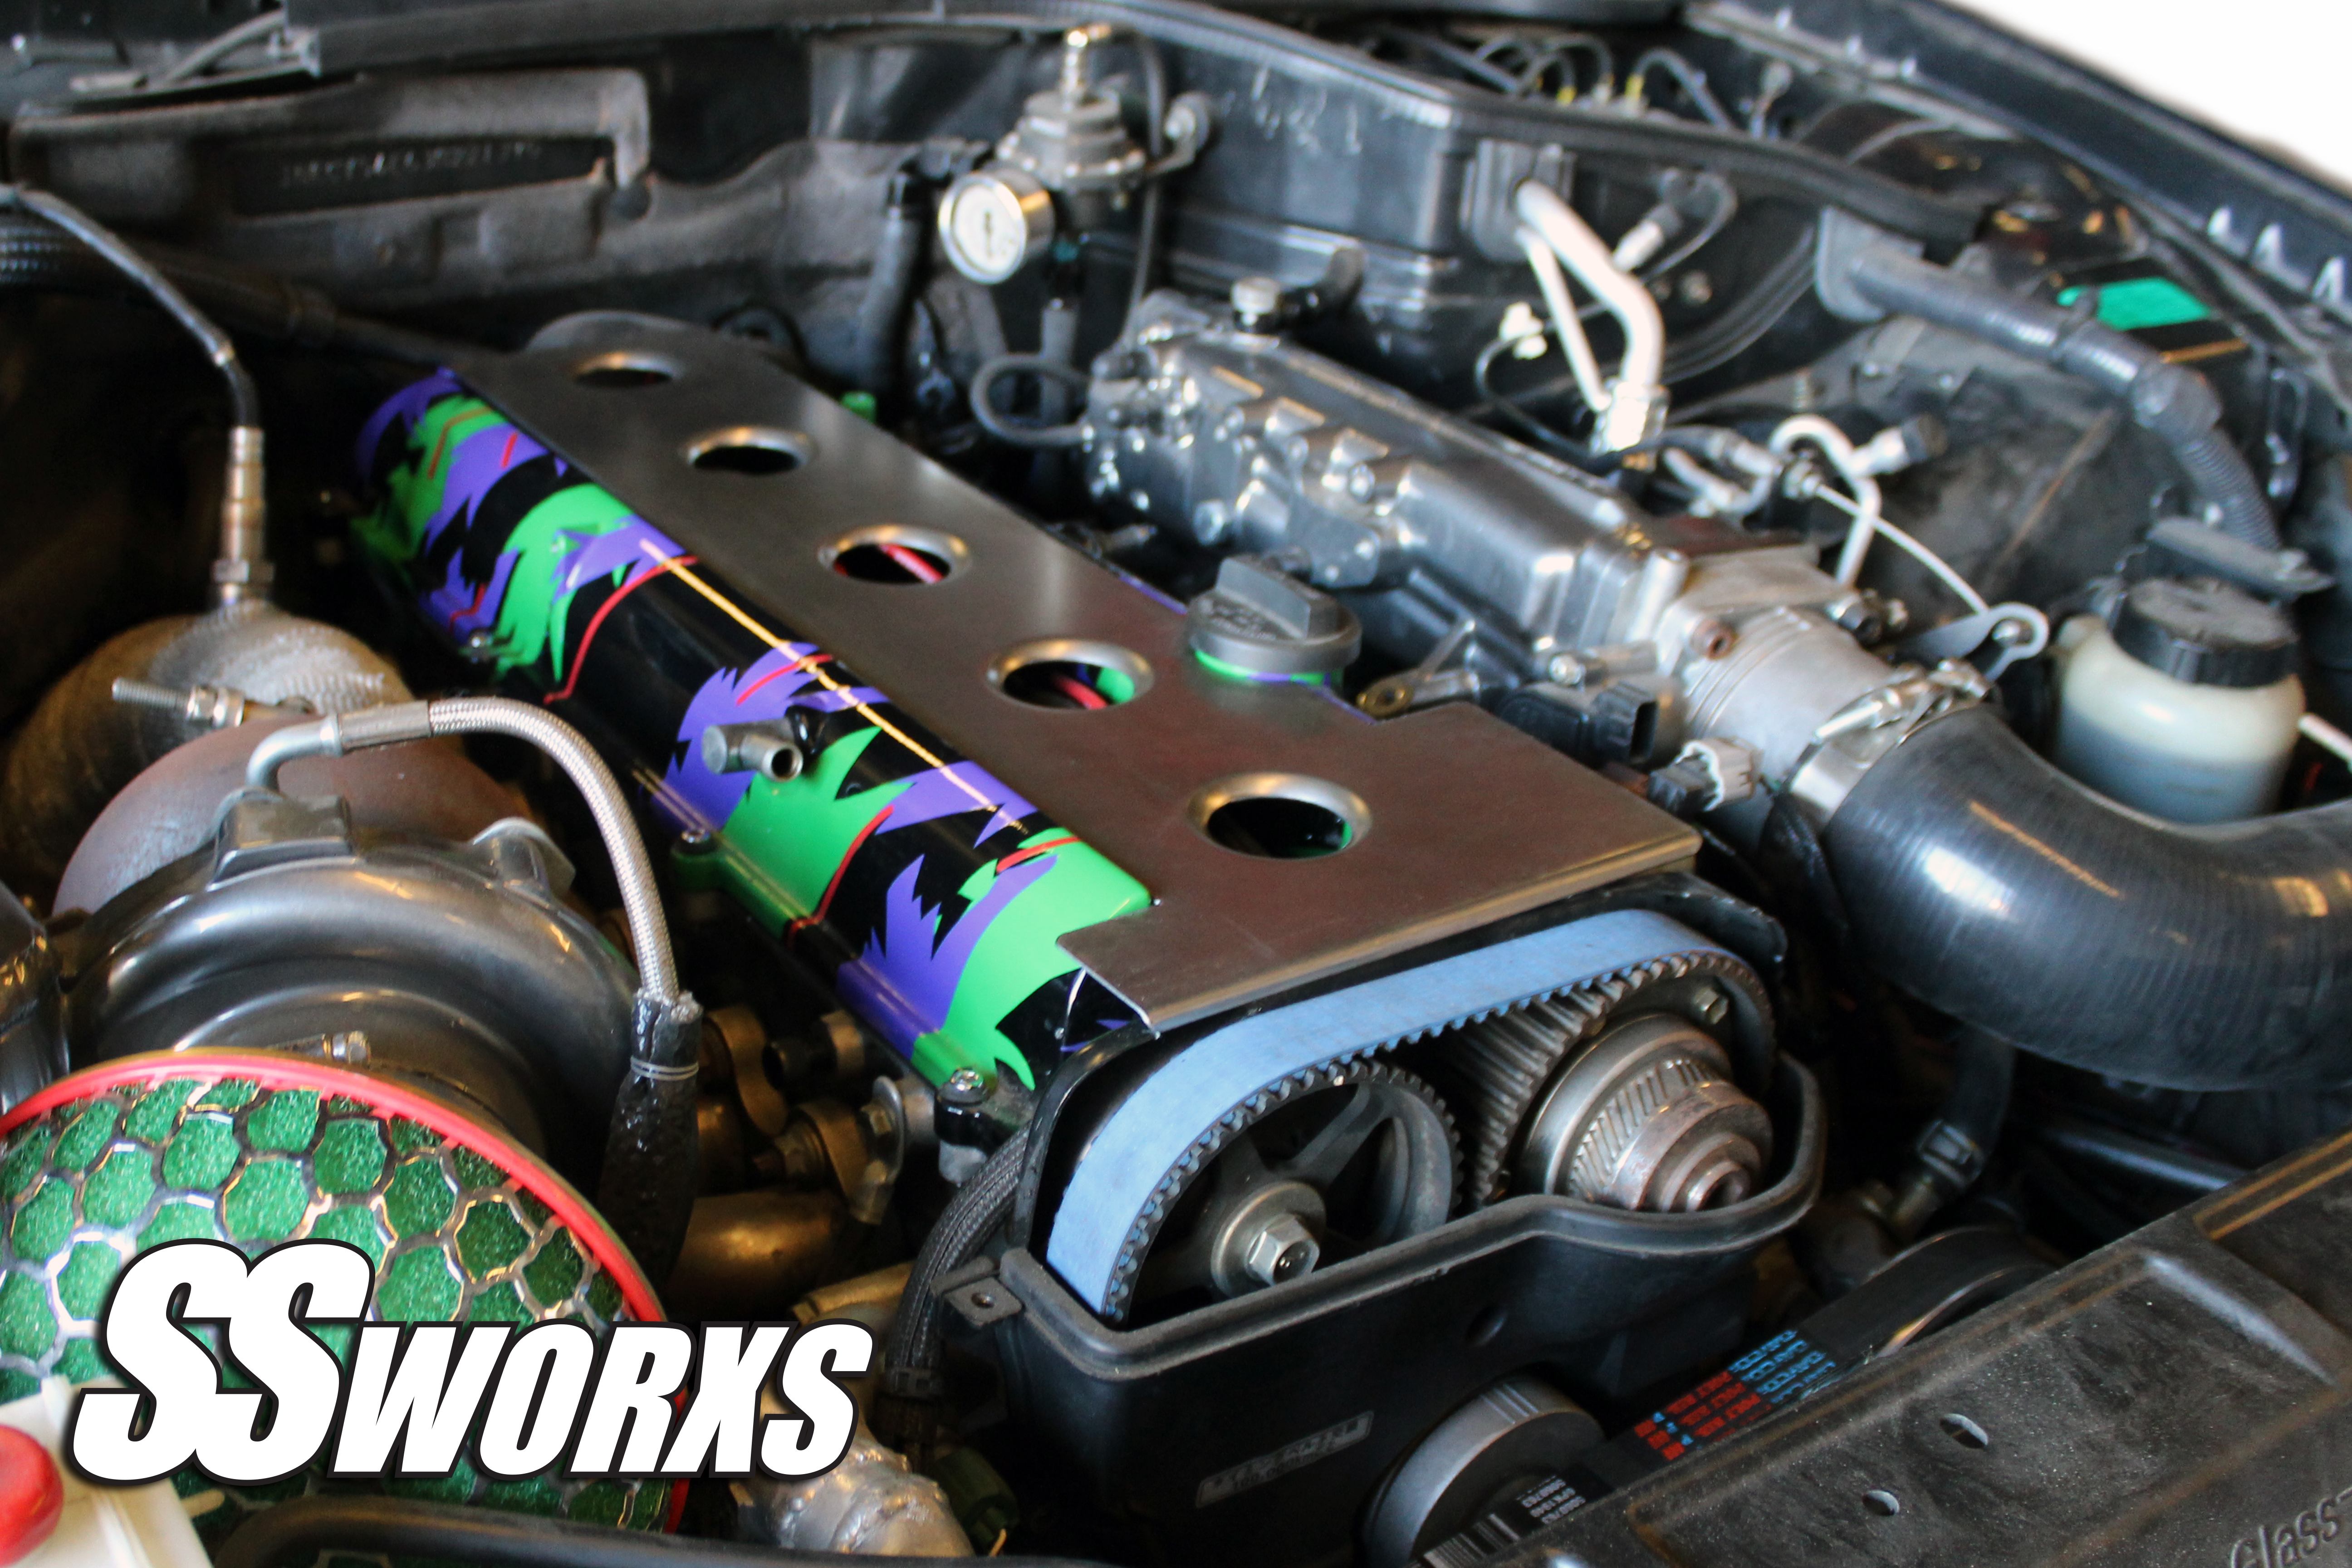 Toyota Supra Vvti 2jz 1998 Rz 400ps 6 Speed Vvt I Engine Wiring Diagram Ssworxs Genuine Japanesse Car Parts And Accessories